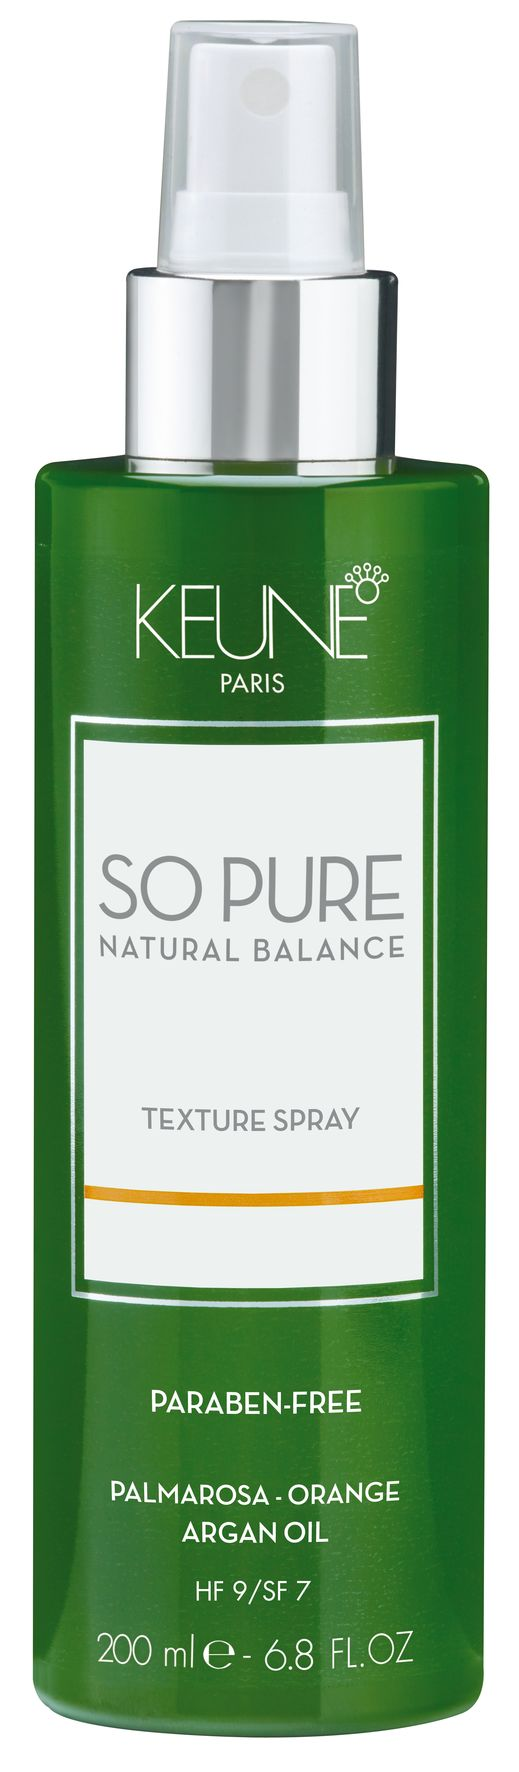 So Pure Texture Spray